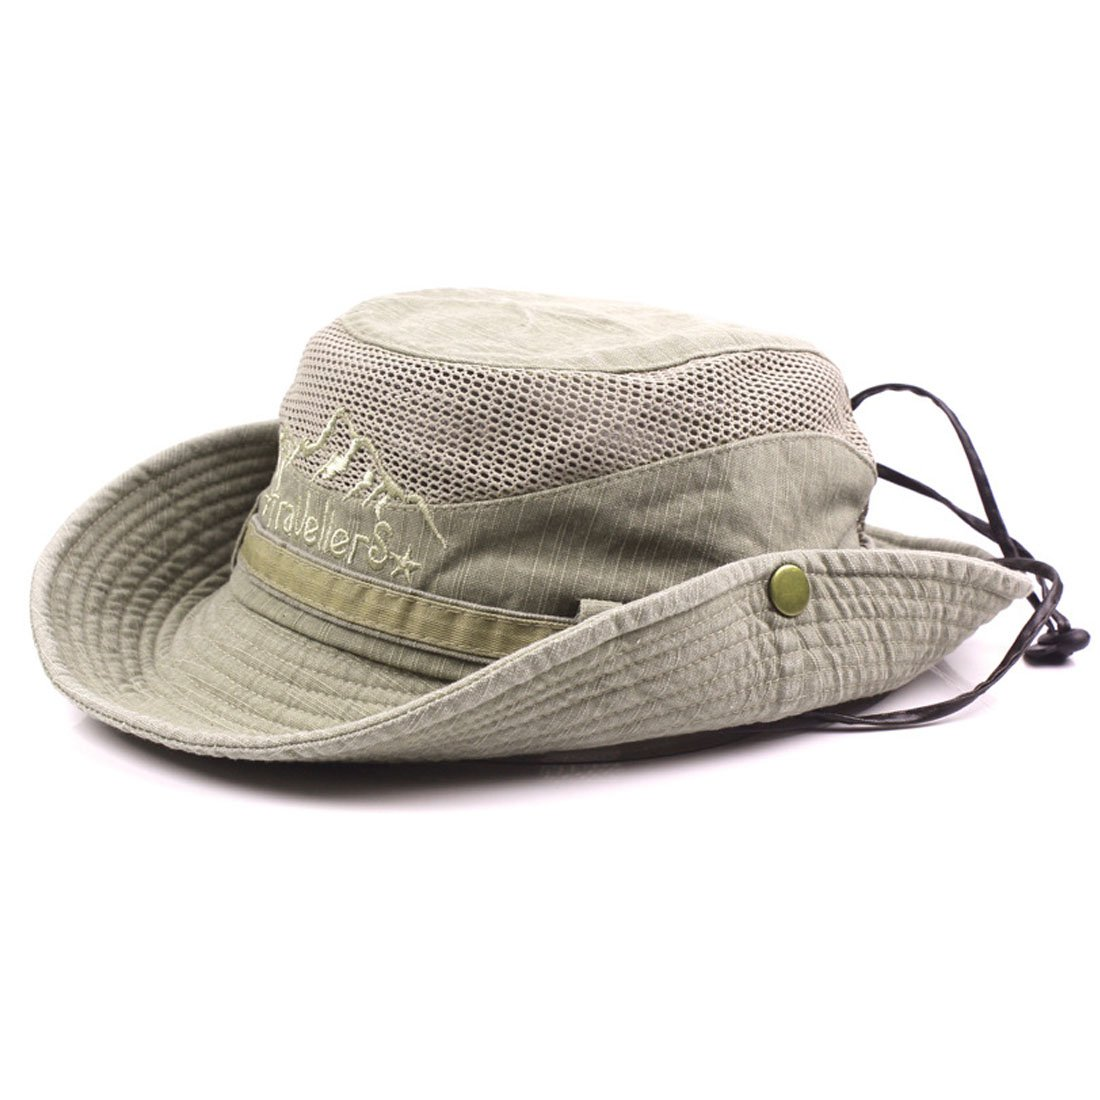 King Star Men Summer Cotton Cowboy Sun Hat Wide Brim Bucket Fishing Hats H614242-1